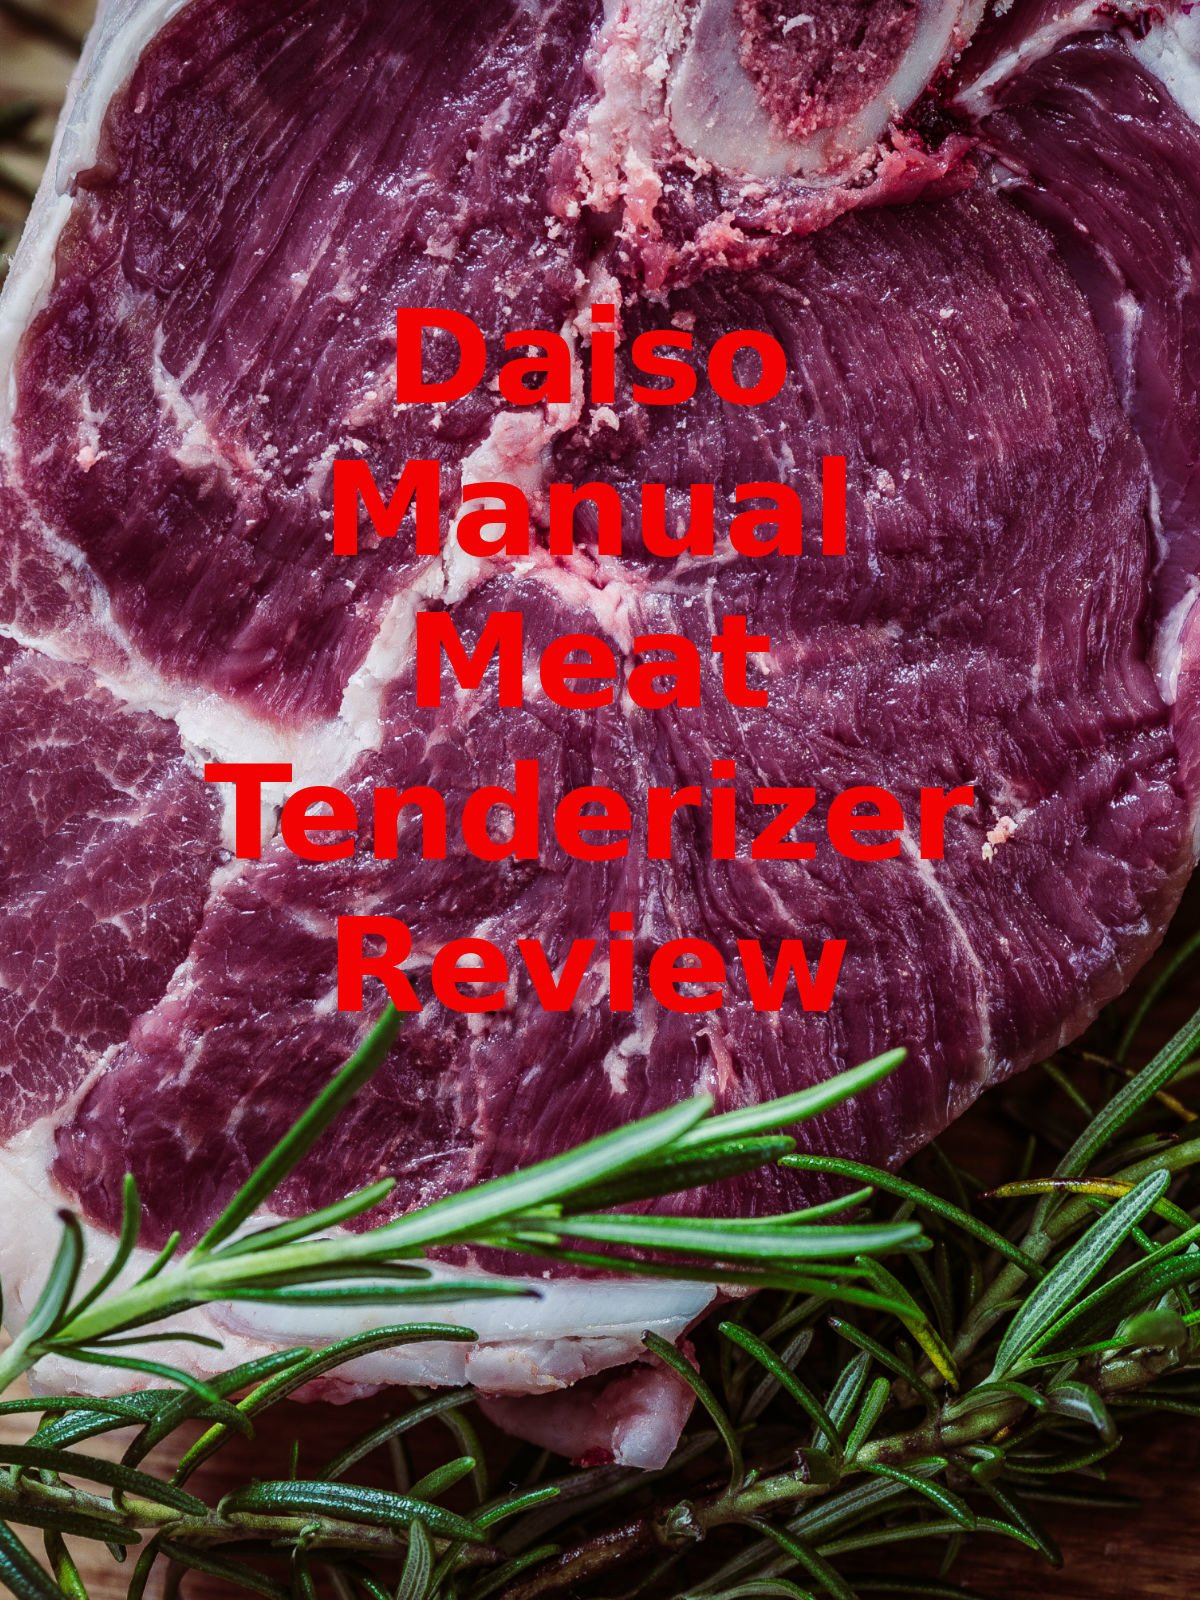 Review: Daiso Manual Meat Tenderizer Review